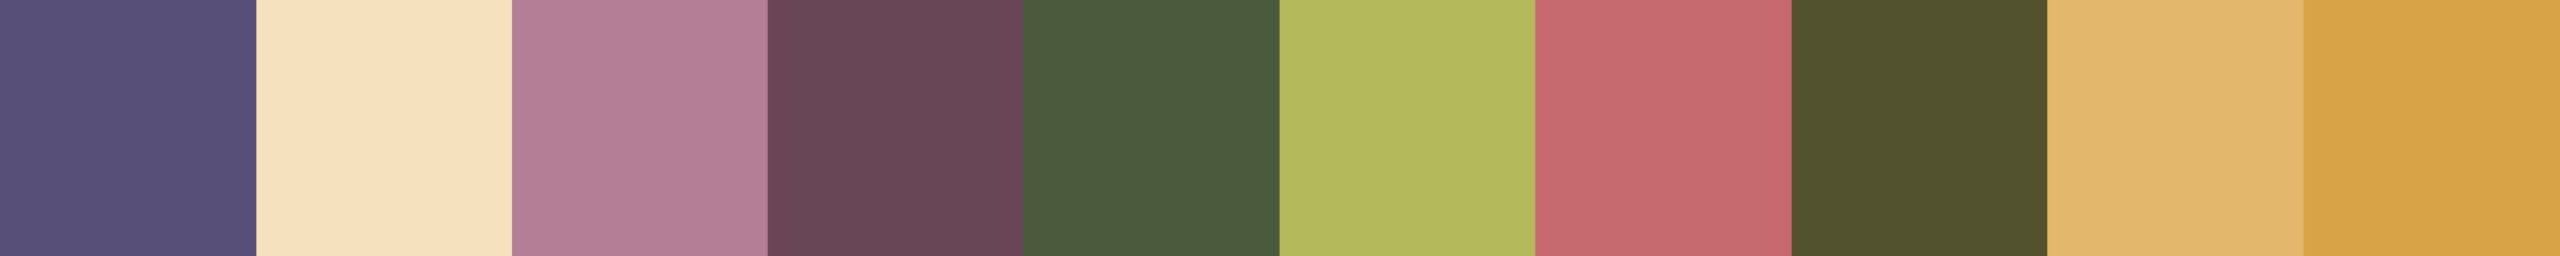 506 Doucrana Color Palette